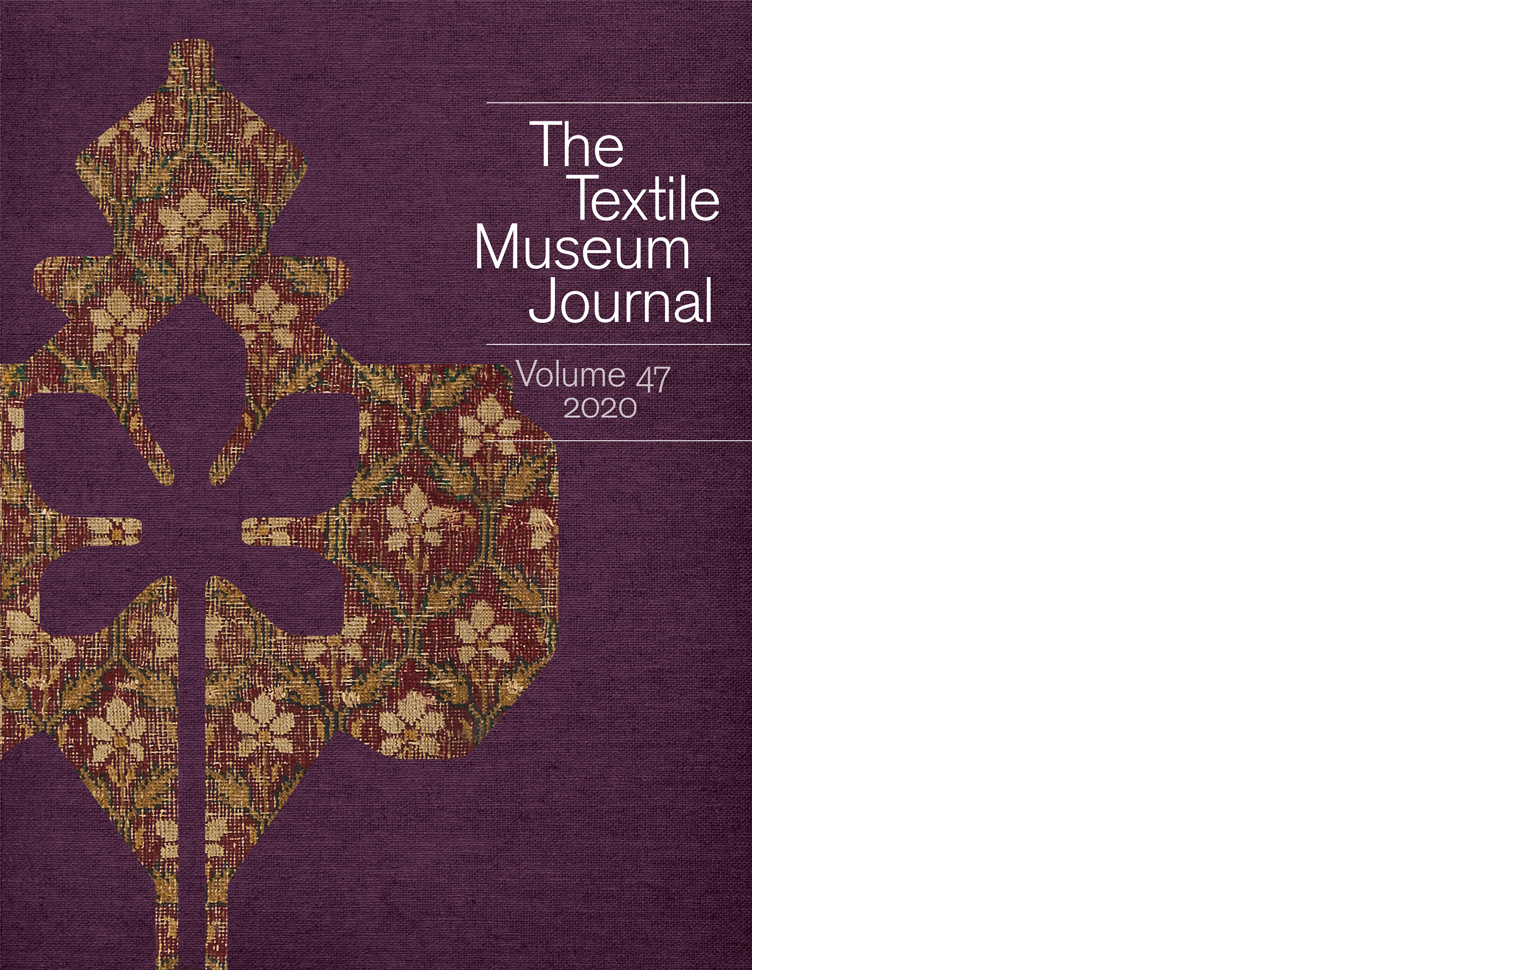 Cover of the Textile Museum Journal Volume 47 2020 featuring a textile detail motif on a textured background.